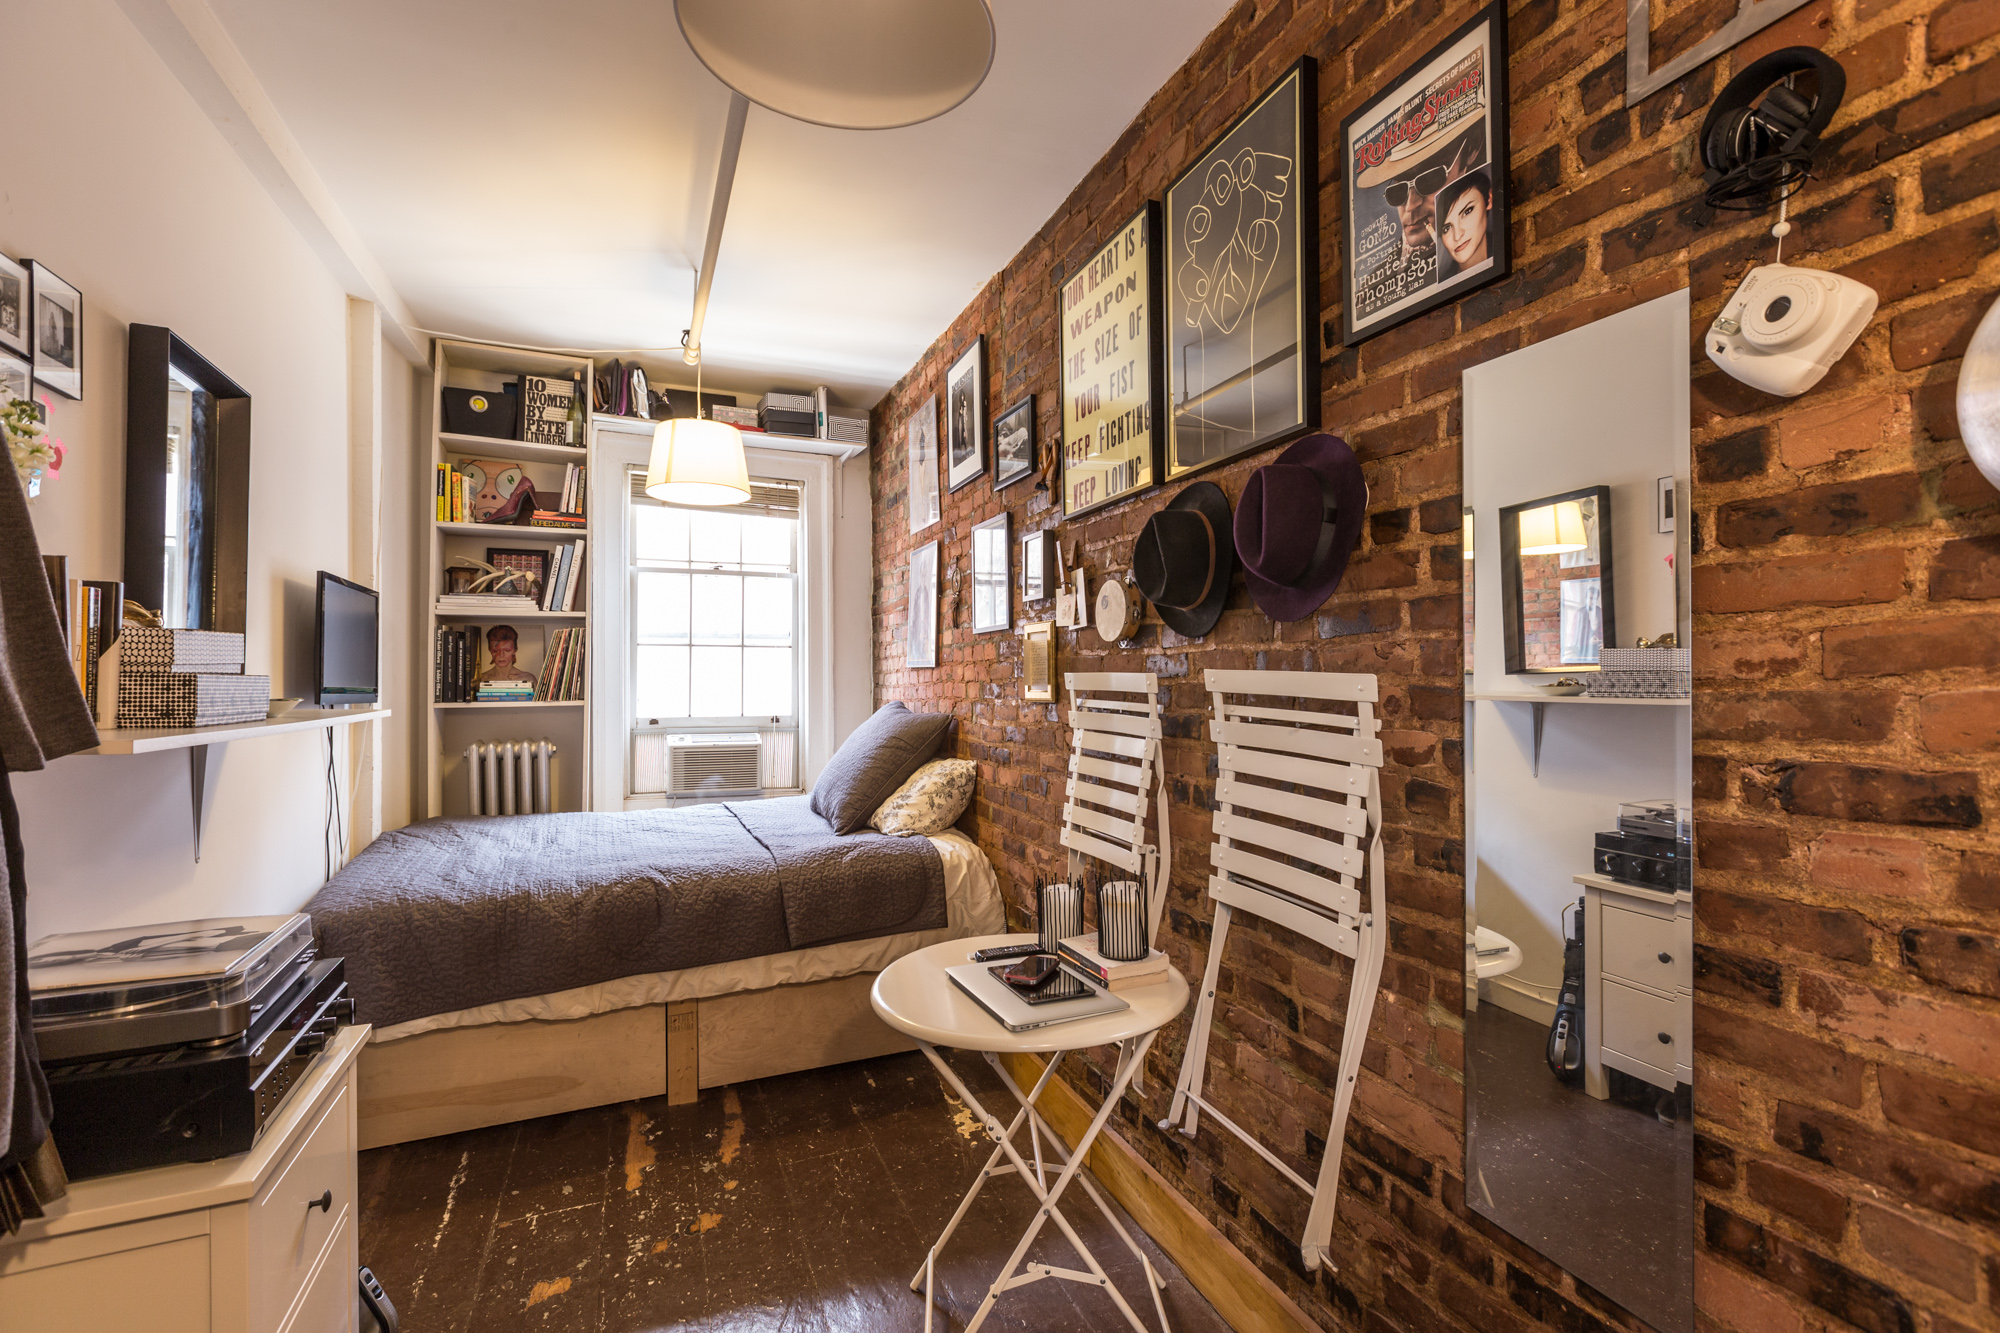 How one new yorker lives comfortably in 90 square feet - Living room decor for small spaces ...